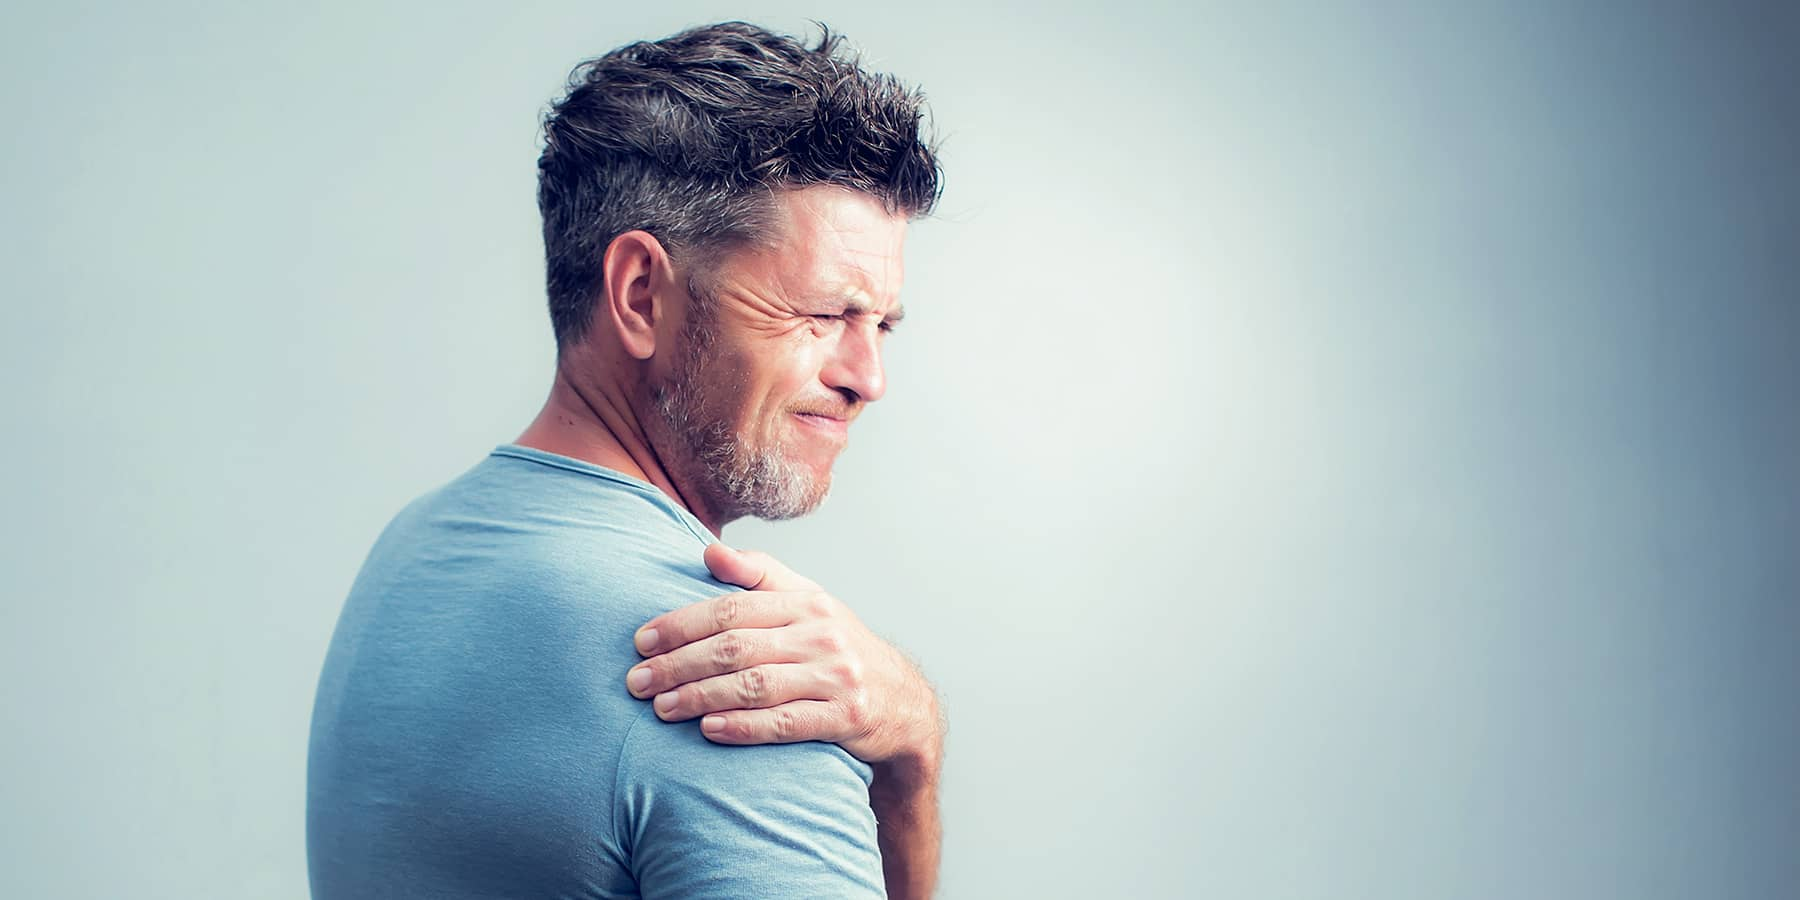 Treating muscle pain